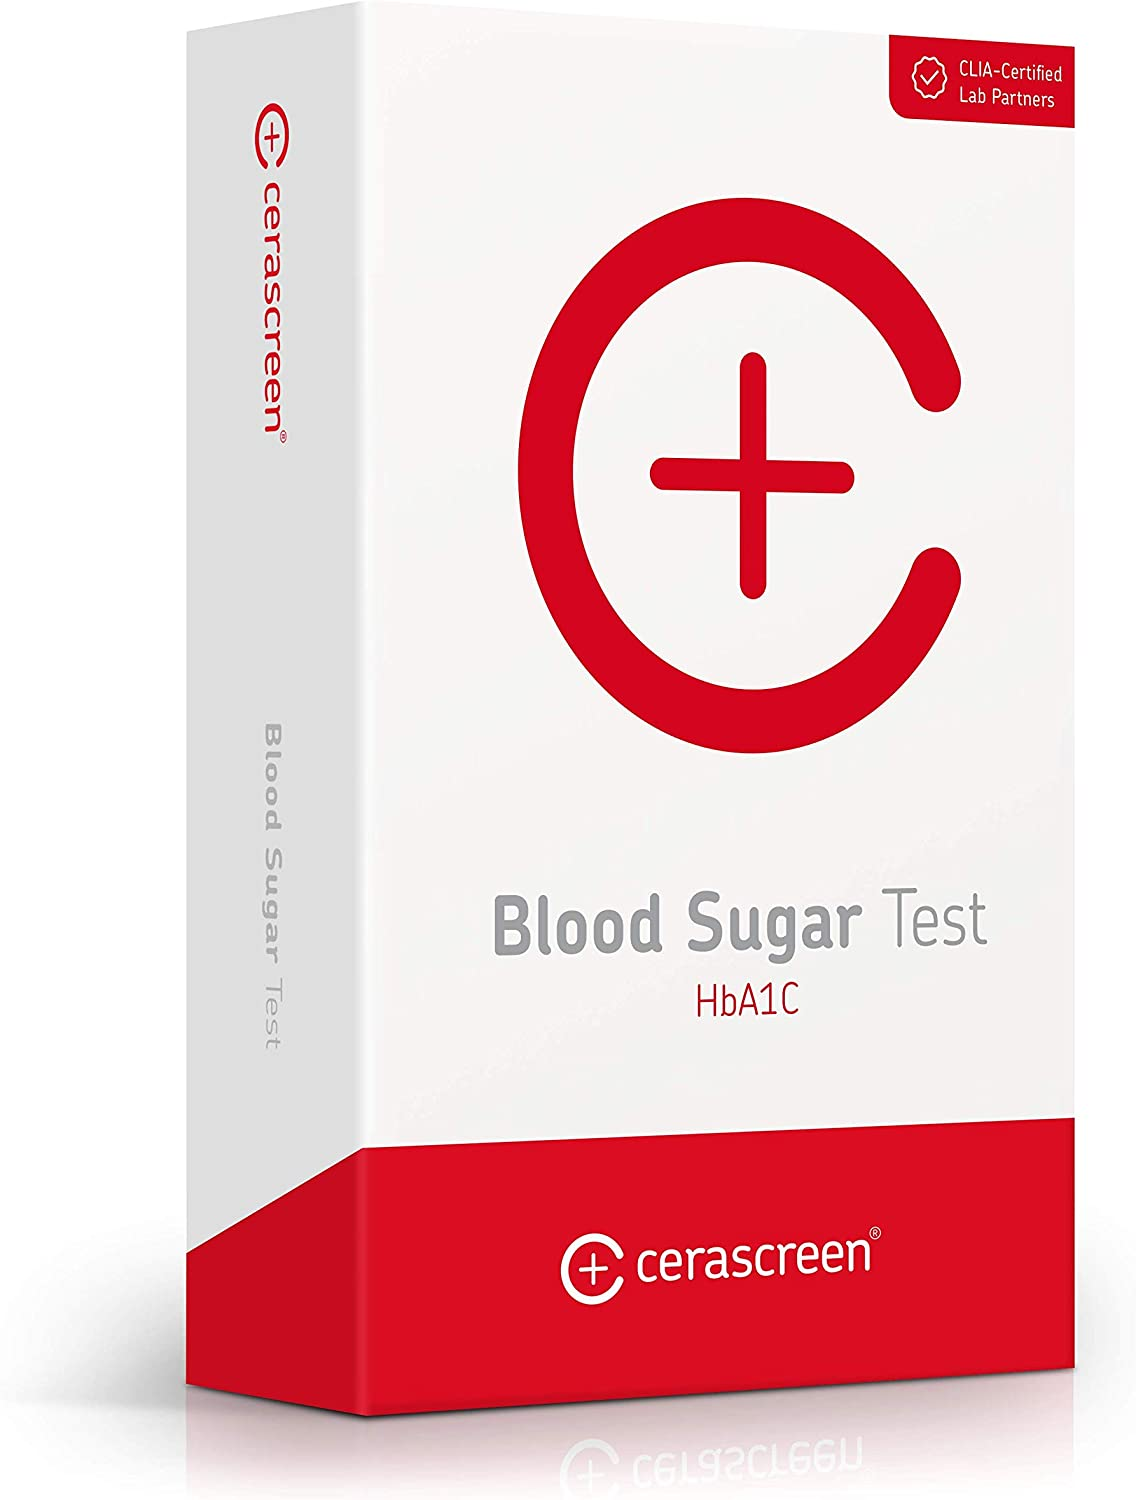 Blood Sugar HbA1c Test by CERASCREEN | Professional CLIA-Certified Lab Analysis | Convenient at-Home Test | Health Screening | Determine Your HbA1c Value | Fast Results | Comprehensive Results Report